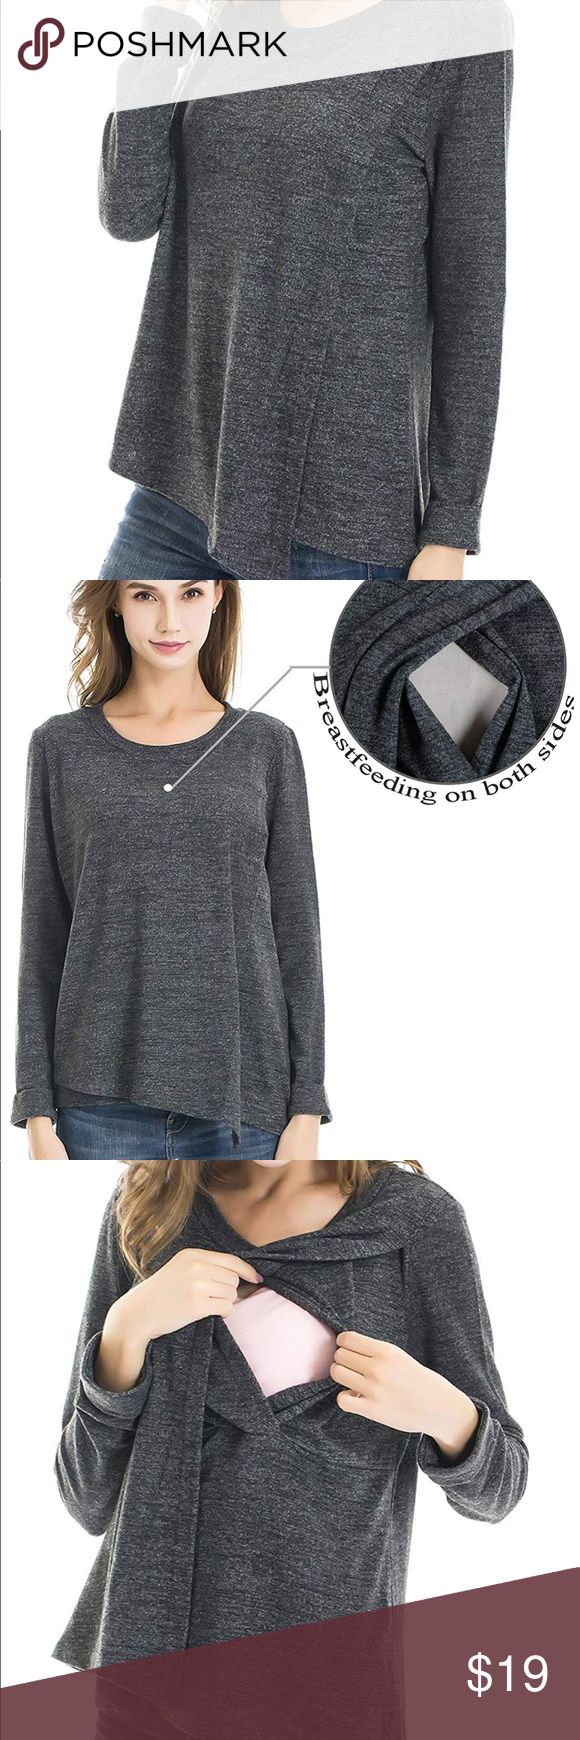 4b1effccb19 Women's Nursing Top Knitting Cotton and Jersey material,stretchy and  practical for Spring and Autumn